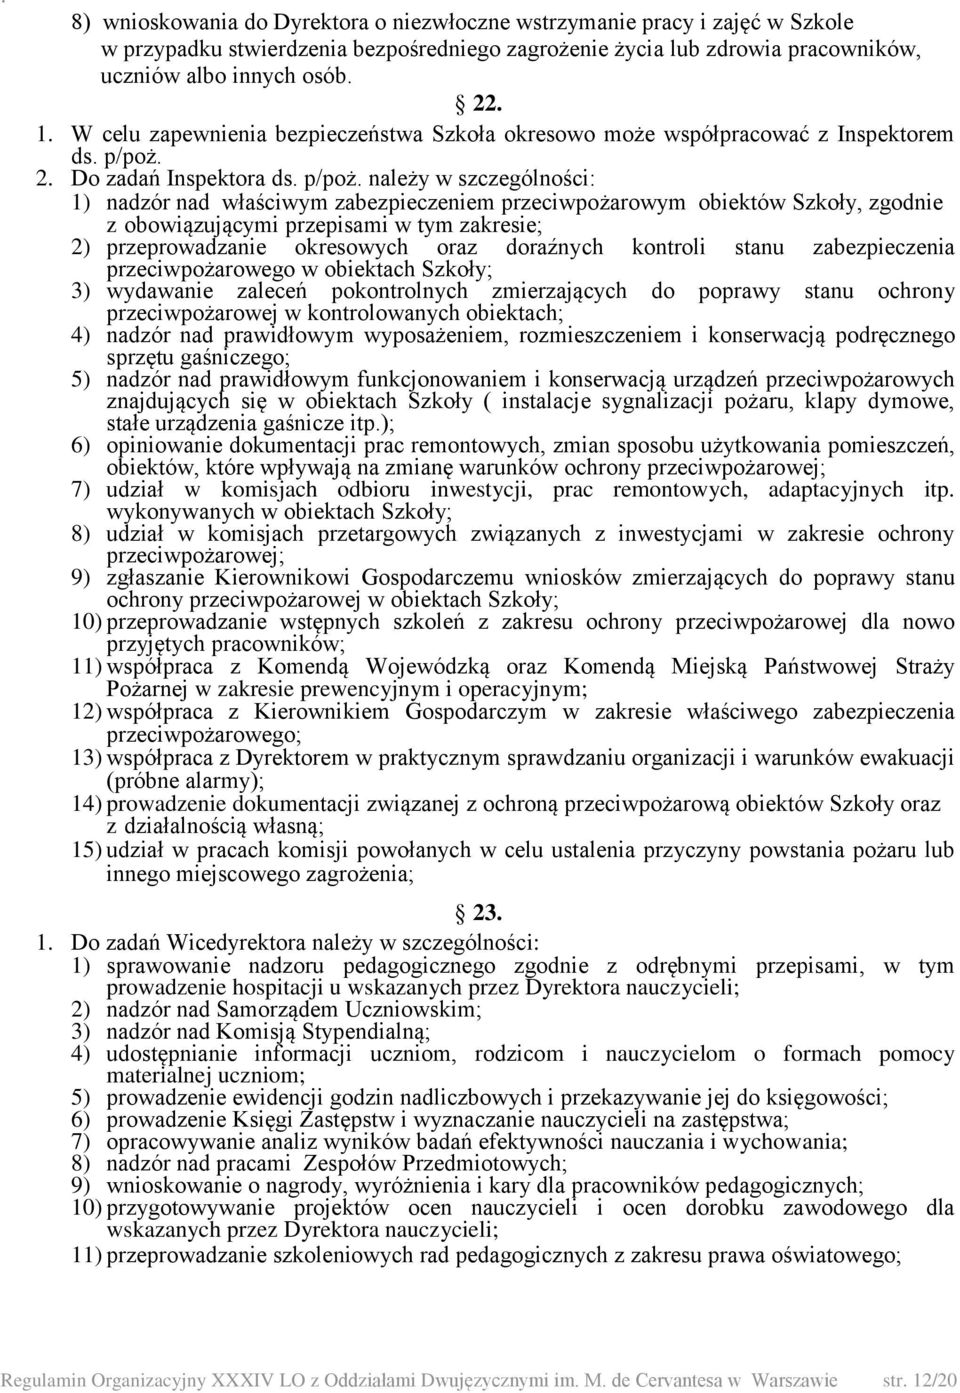 2. Do zadań Inspektora ds. p/poż.